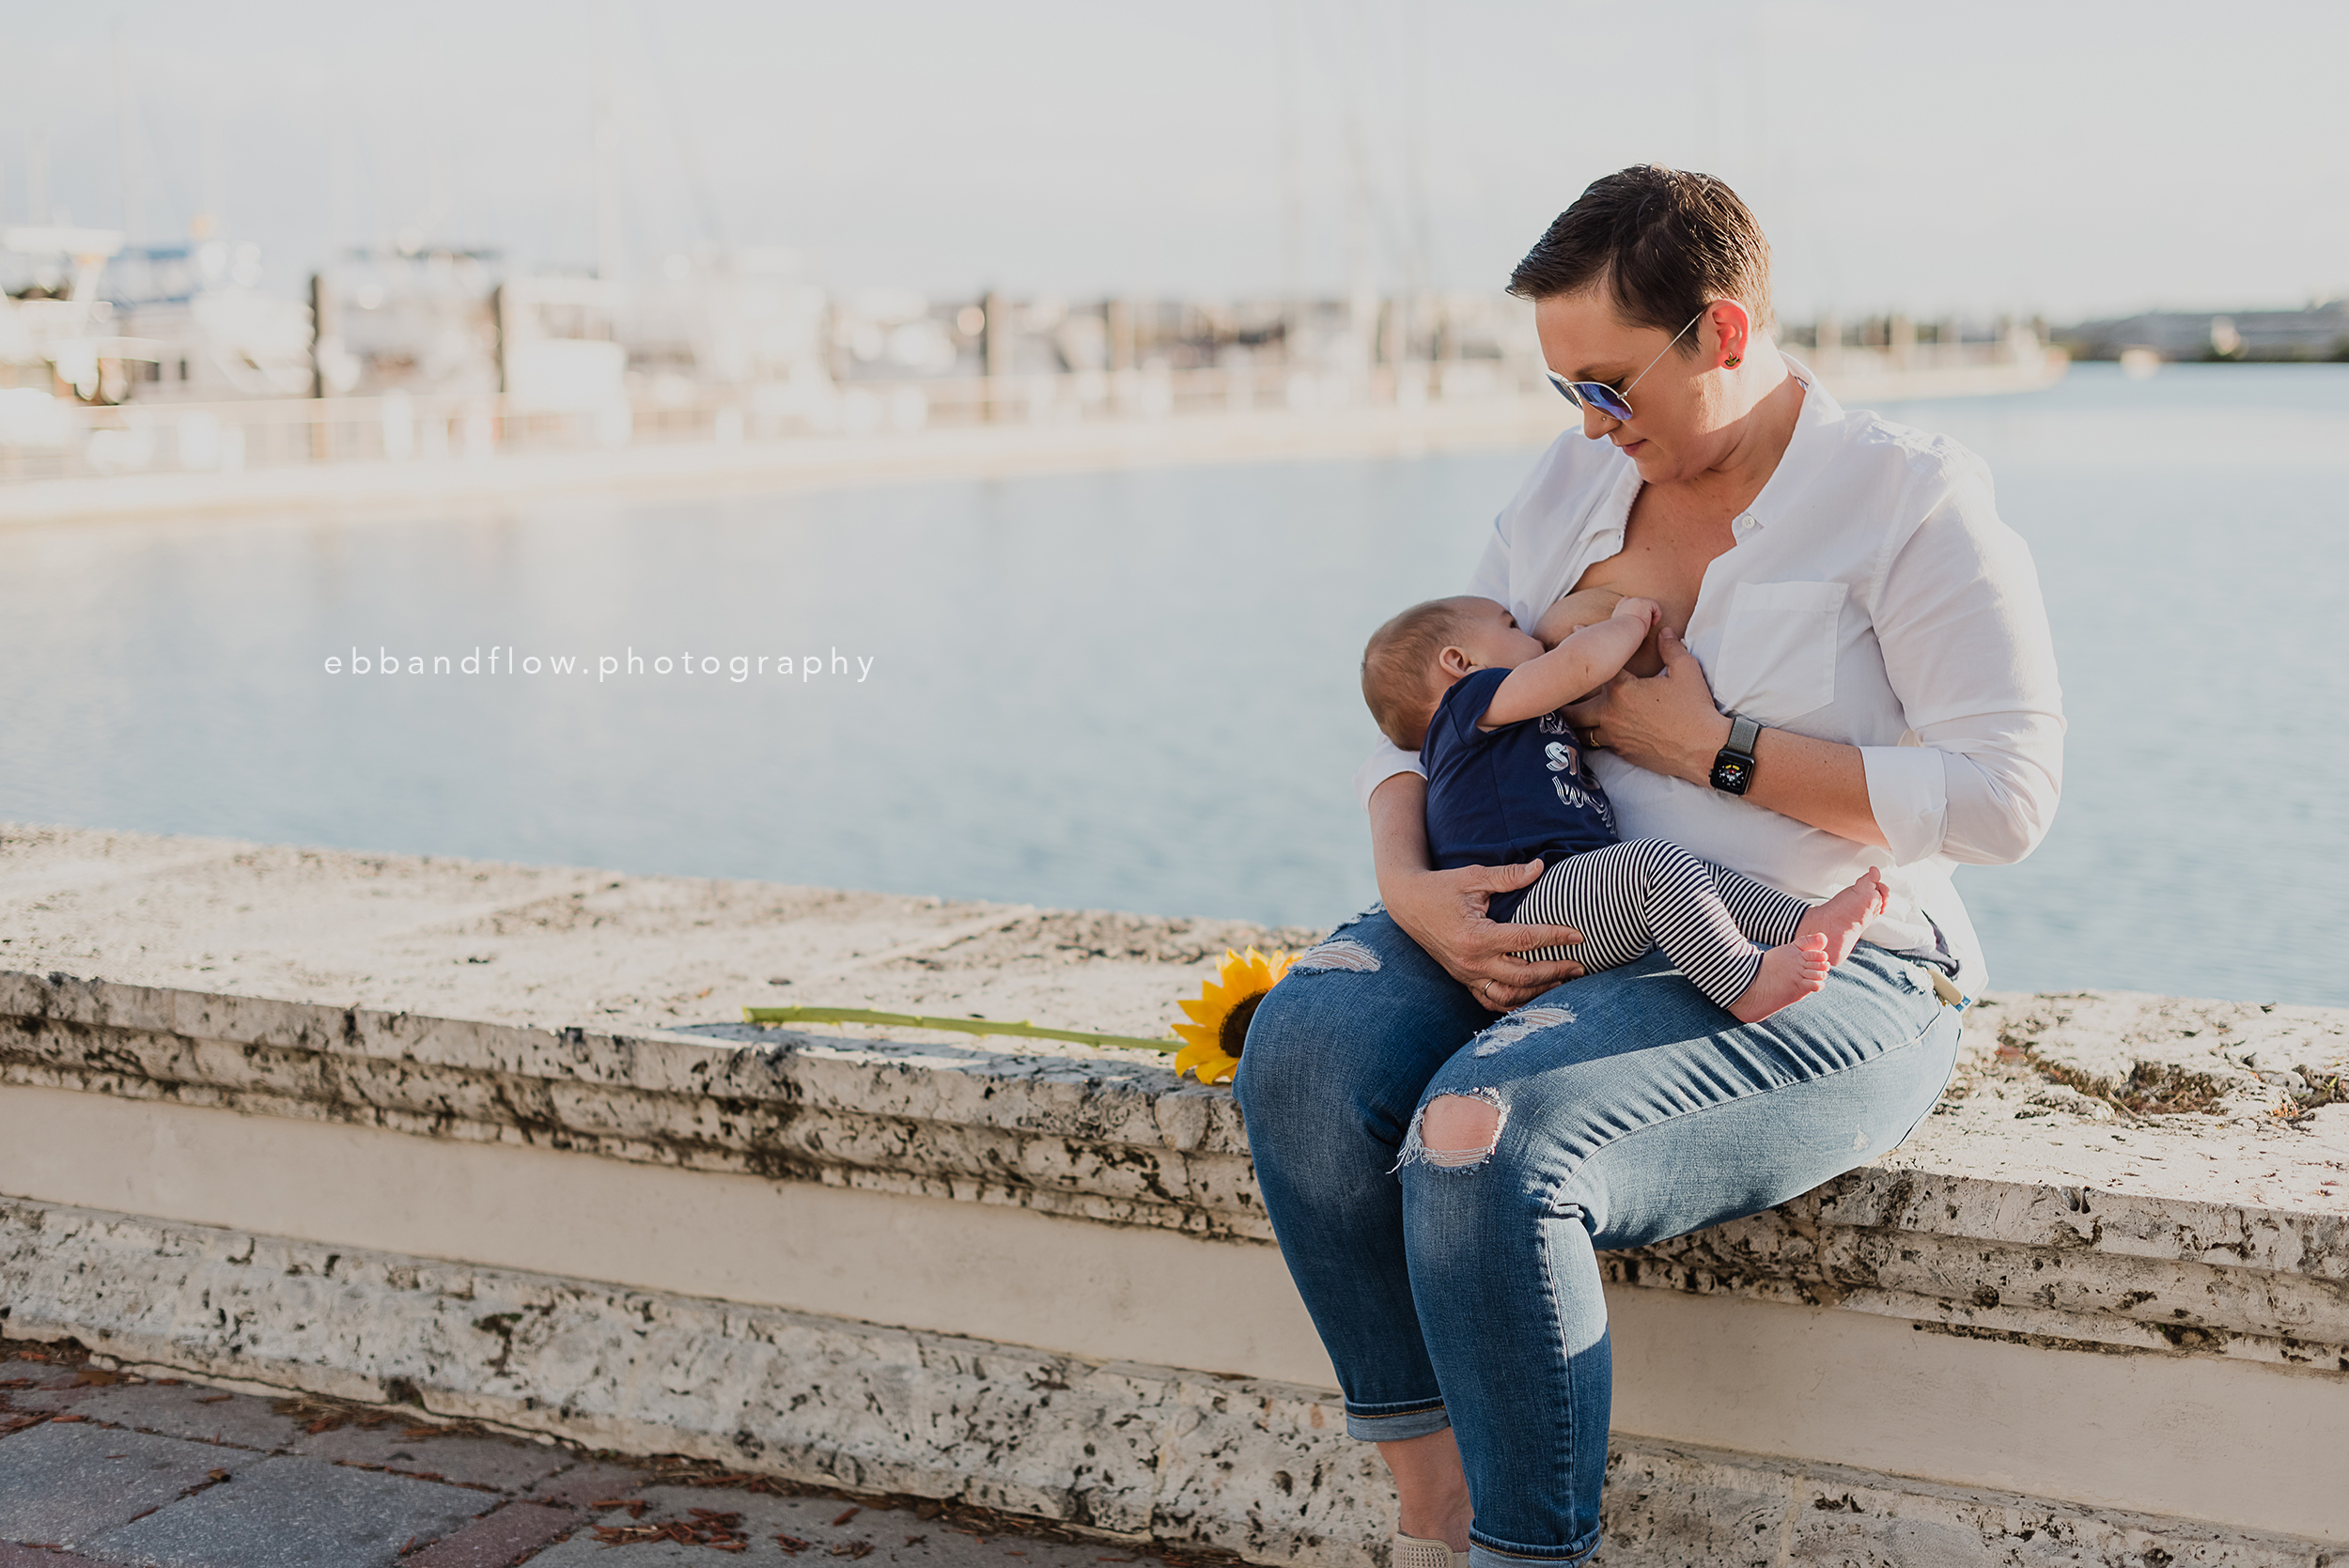 Fort Pierce Breastfeeding Photography - Ebb and Flow Photography -  breastfeeding by the water.jpg